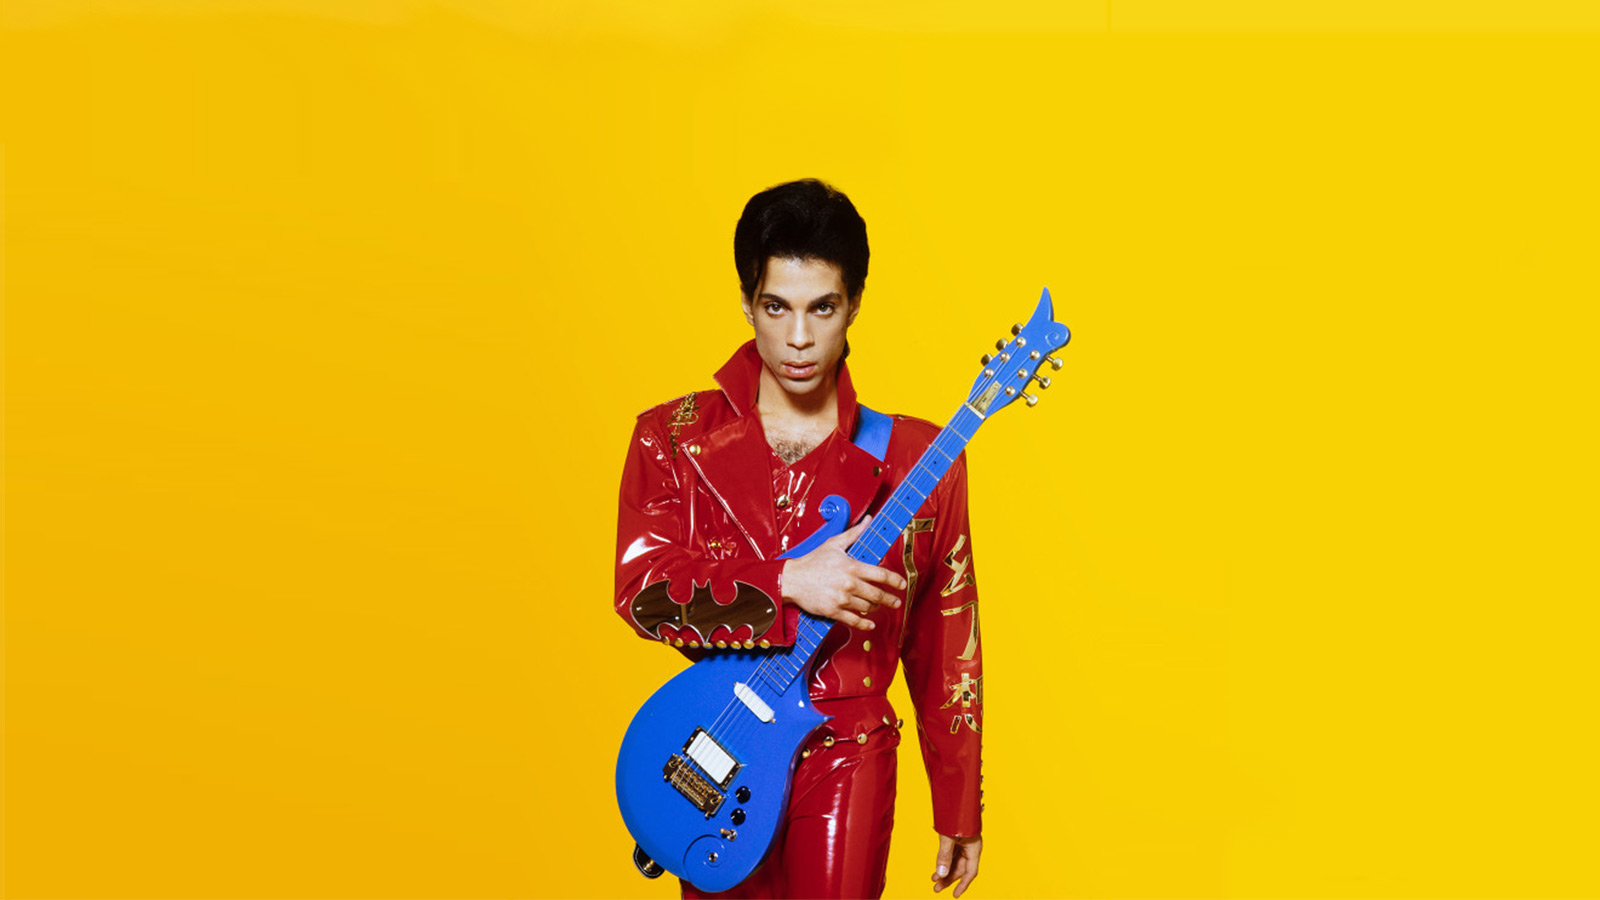 Prince Cloud Guitar